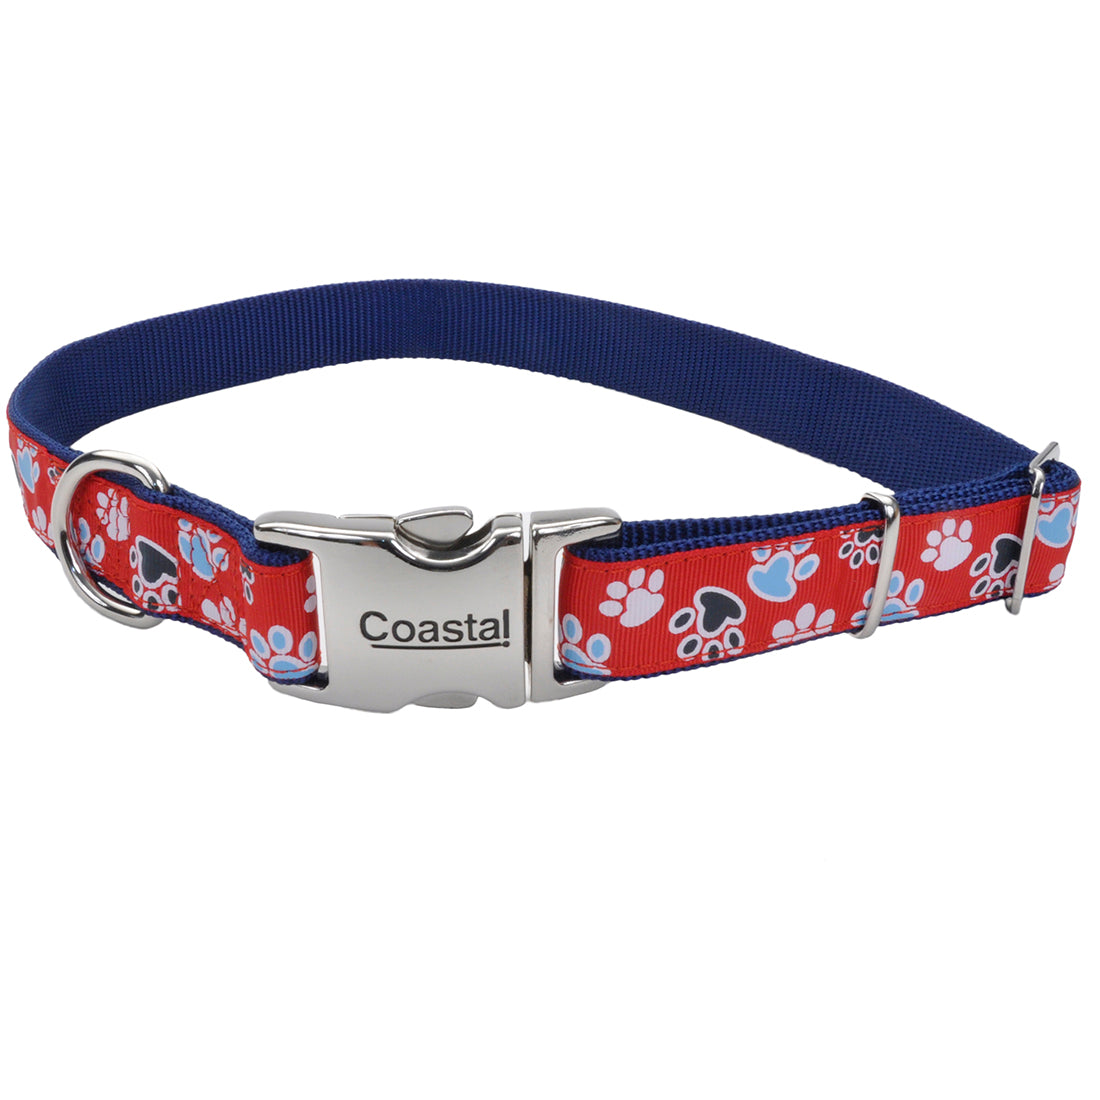 "Coastal Pet Attire Ribbon Designer Adjustable Collar 18-26"" - 1"" Red with Paws"